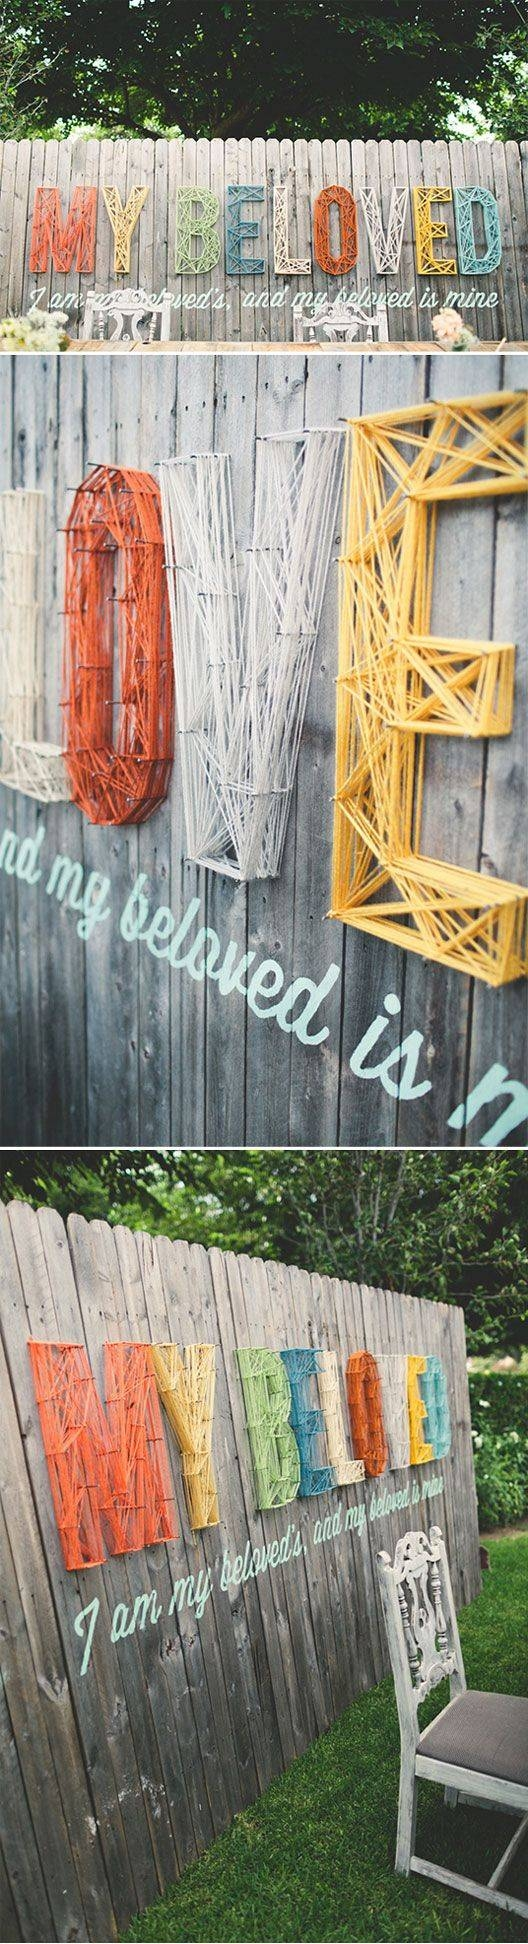 Incredible Diy Garden Fence Wall Art Ideas In Latest 3D Garden Wall Art (View 12 of 20)